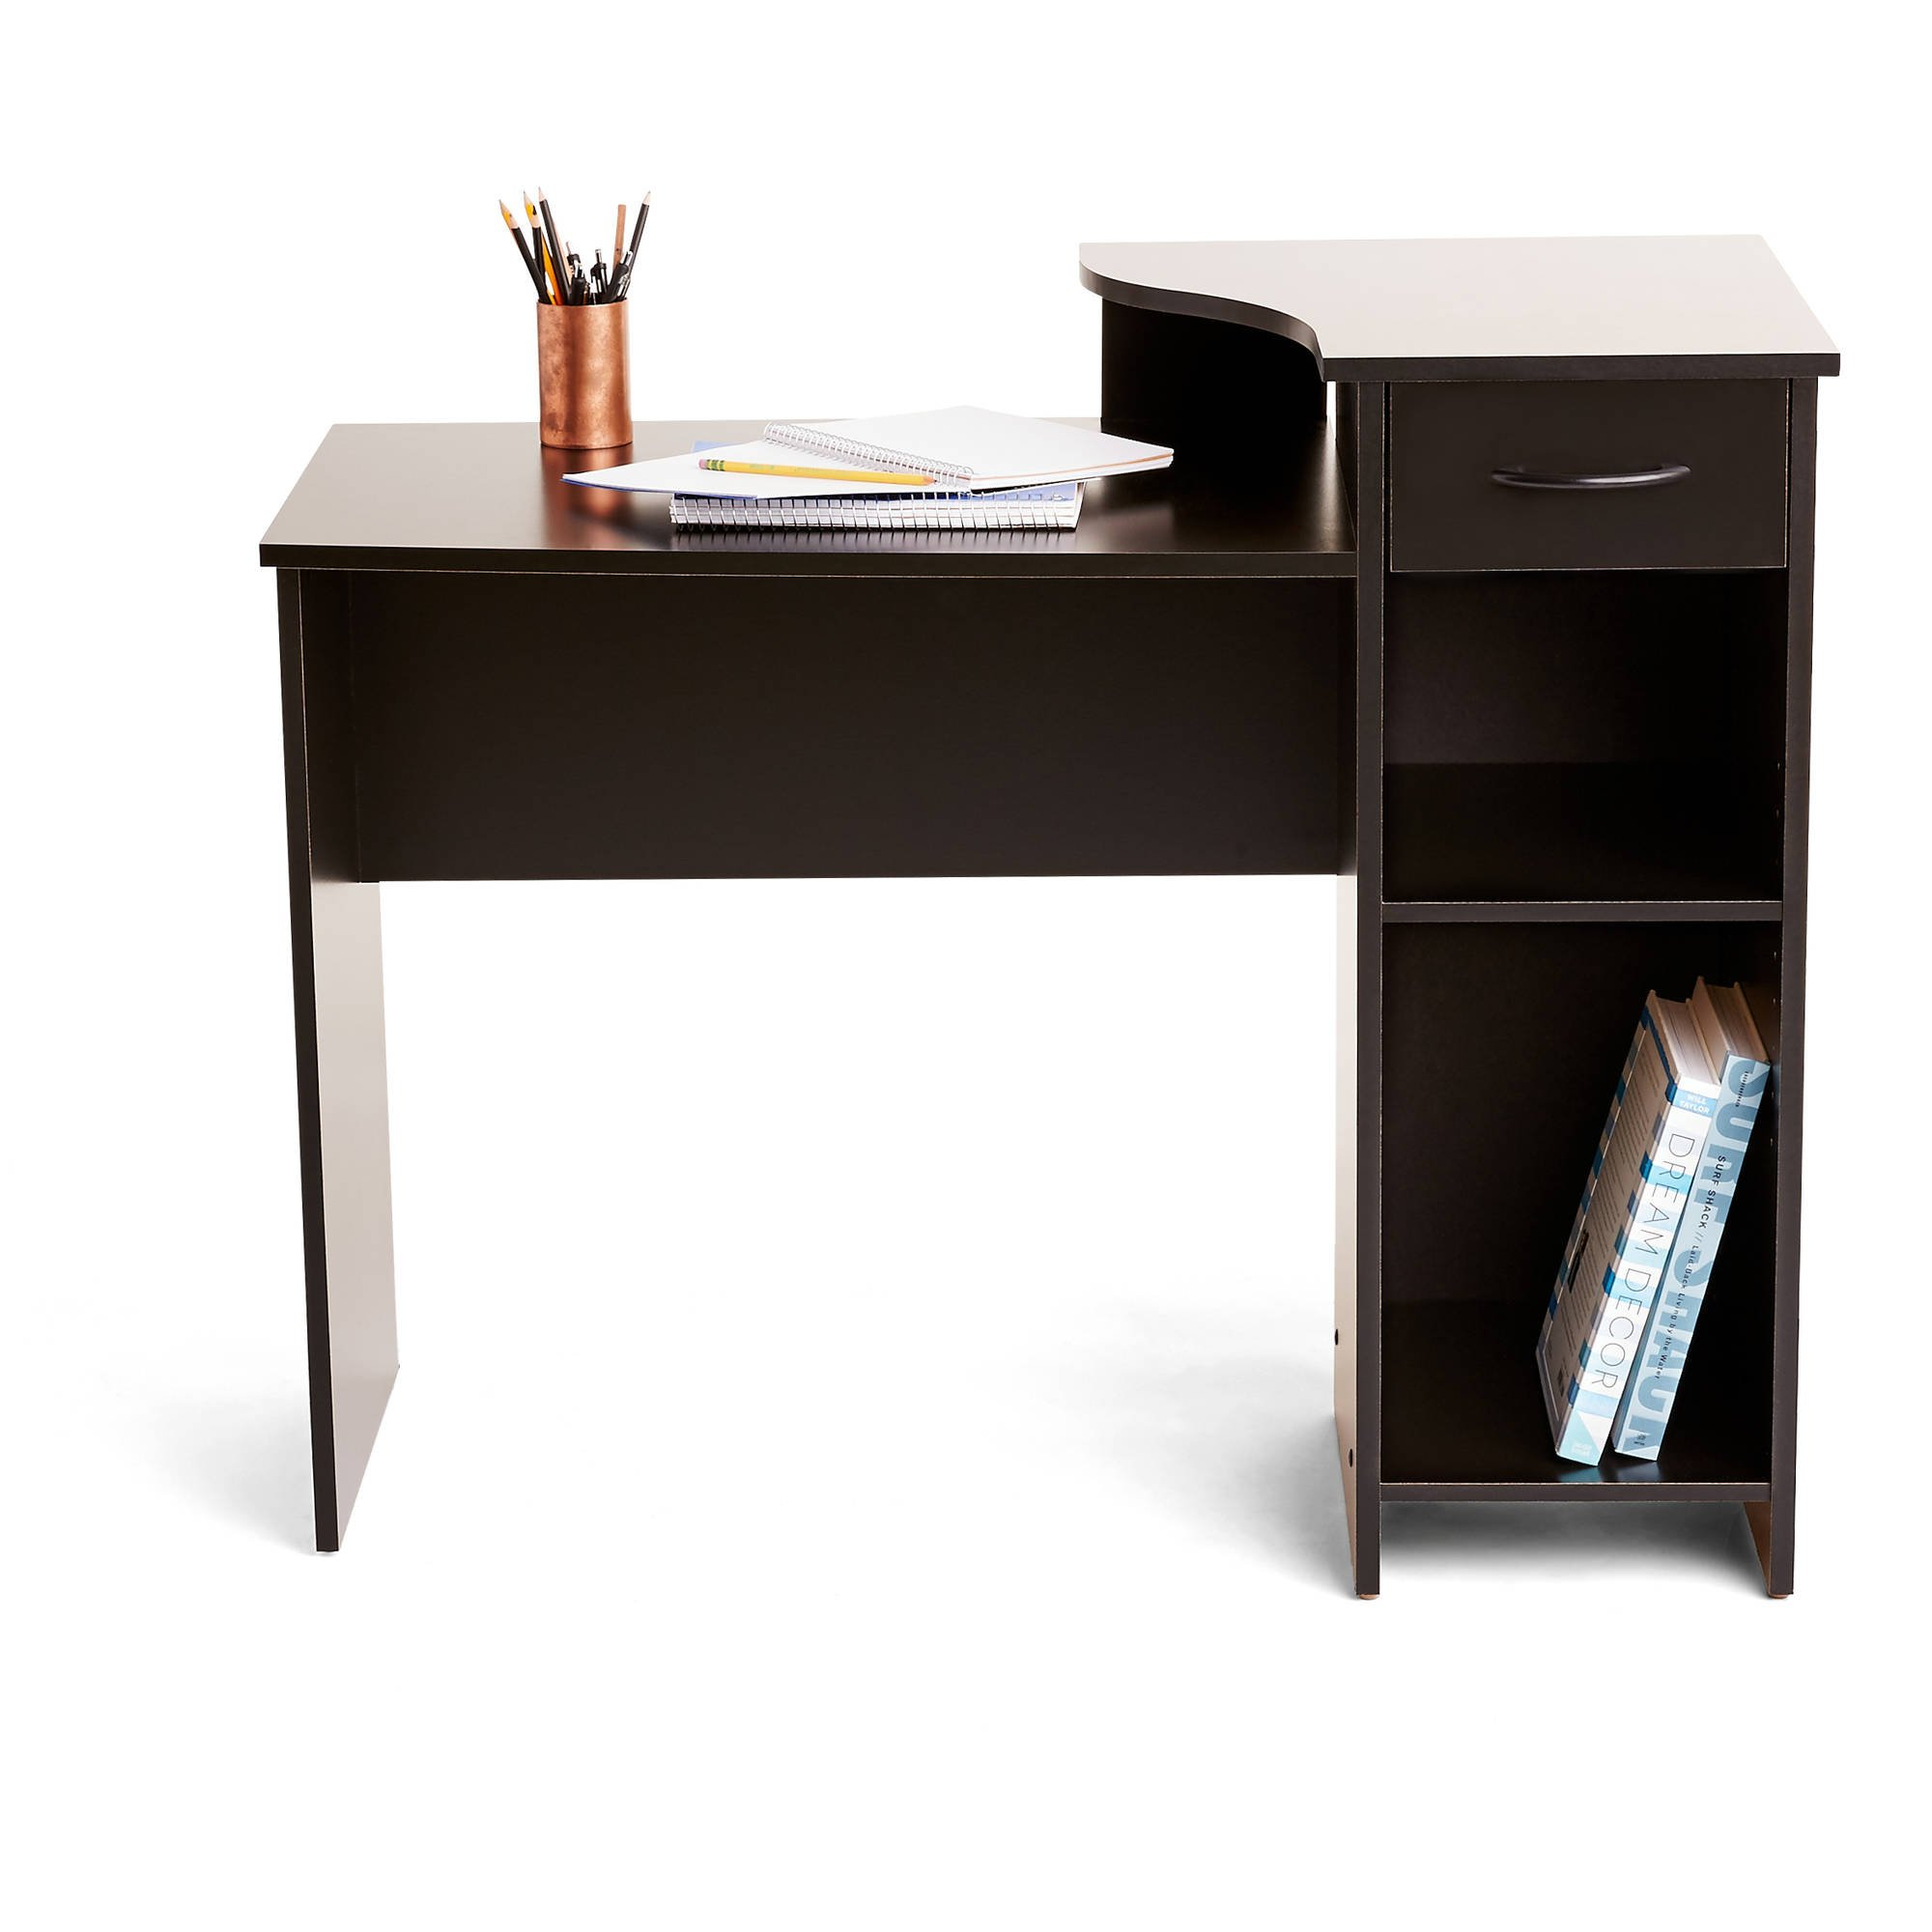 Adjustable Storage Shelf and Easy Gliding Drawer Student Desk in Solid Black